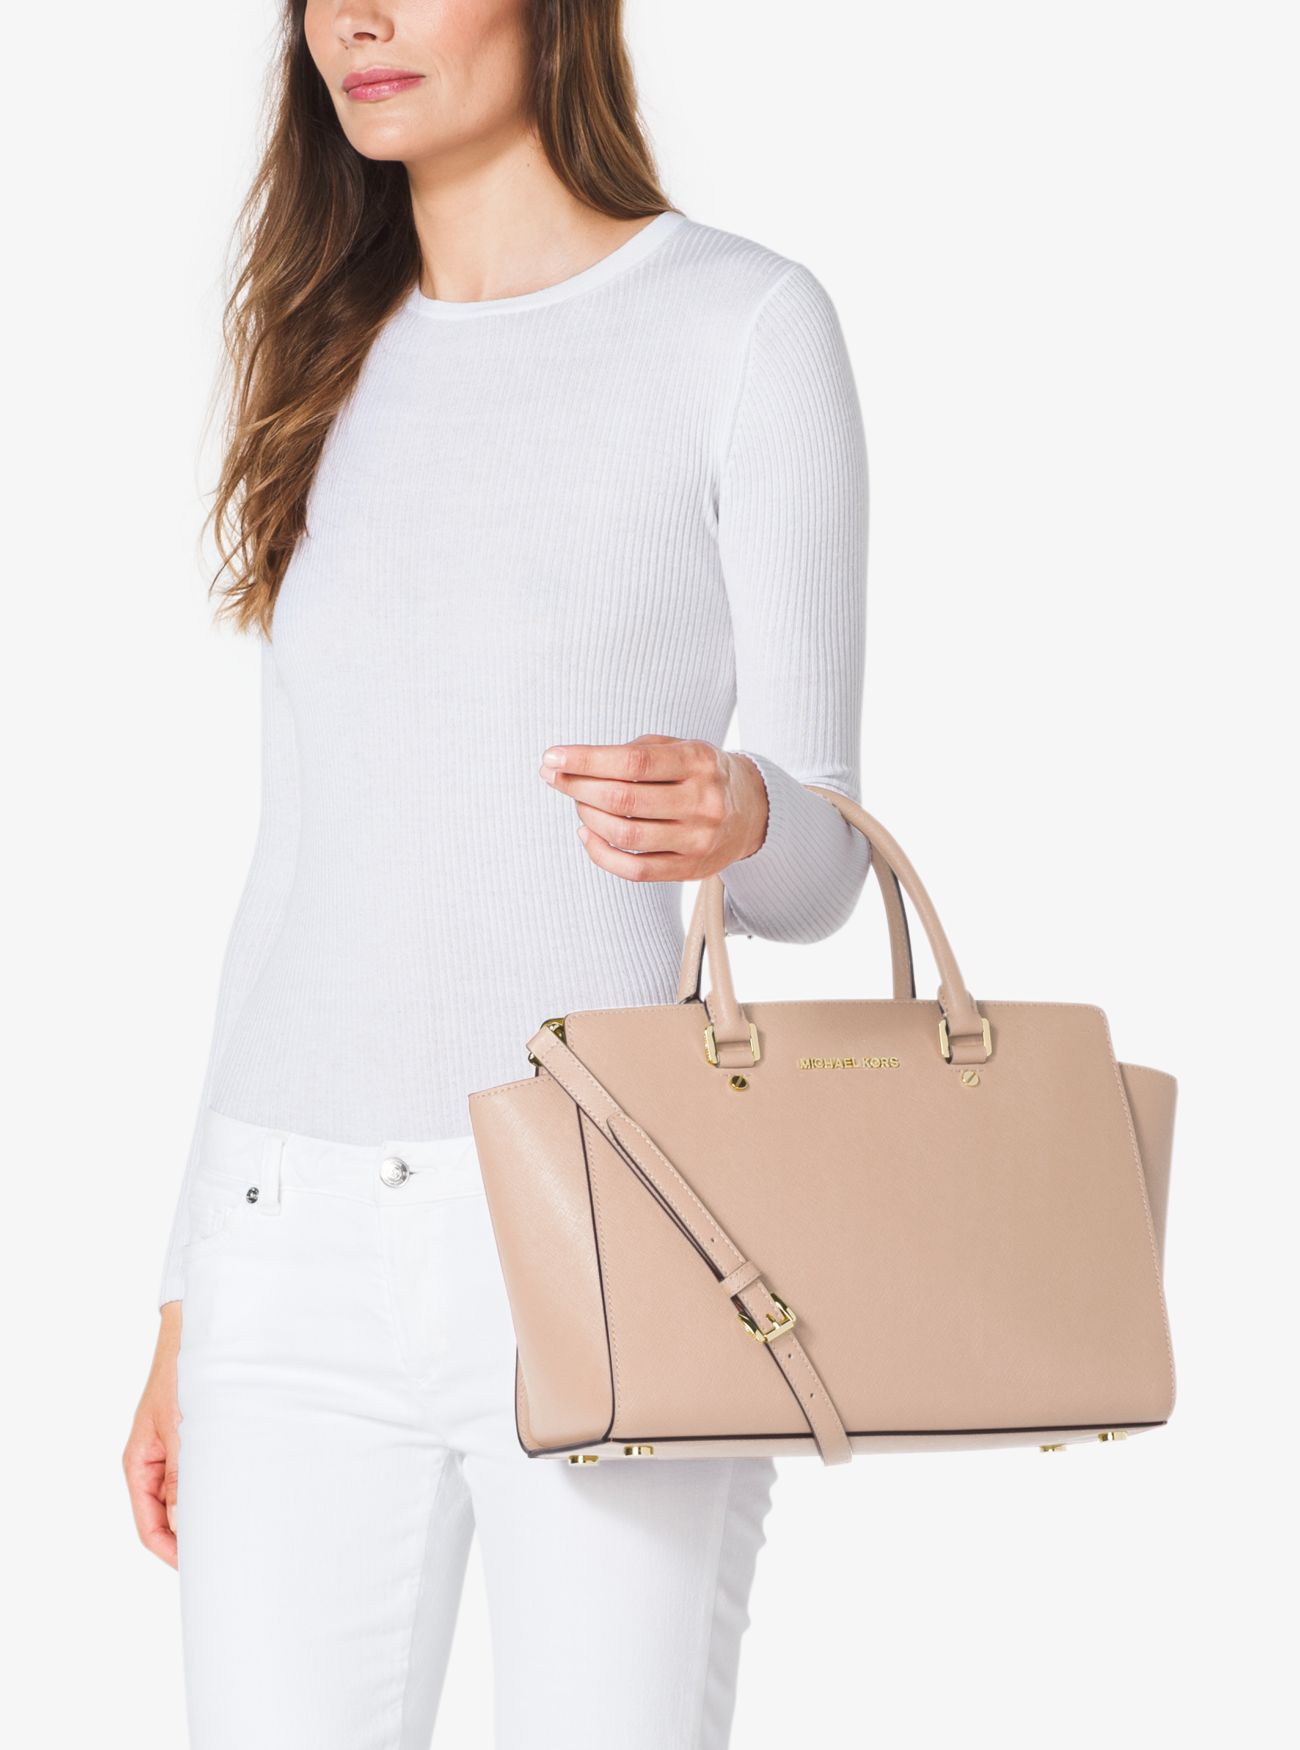 Michael Kors Selma Large